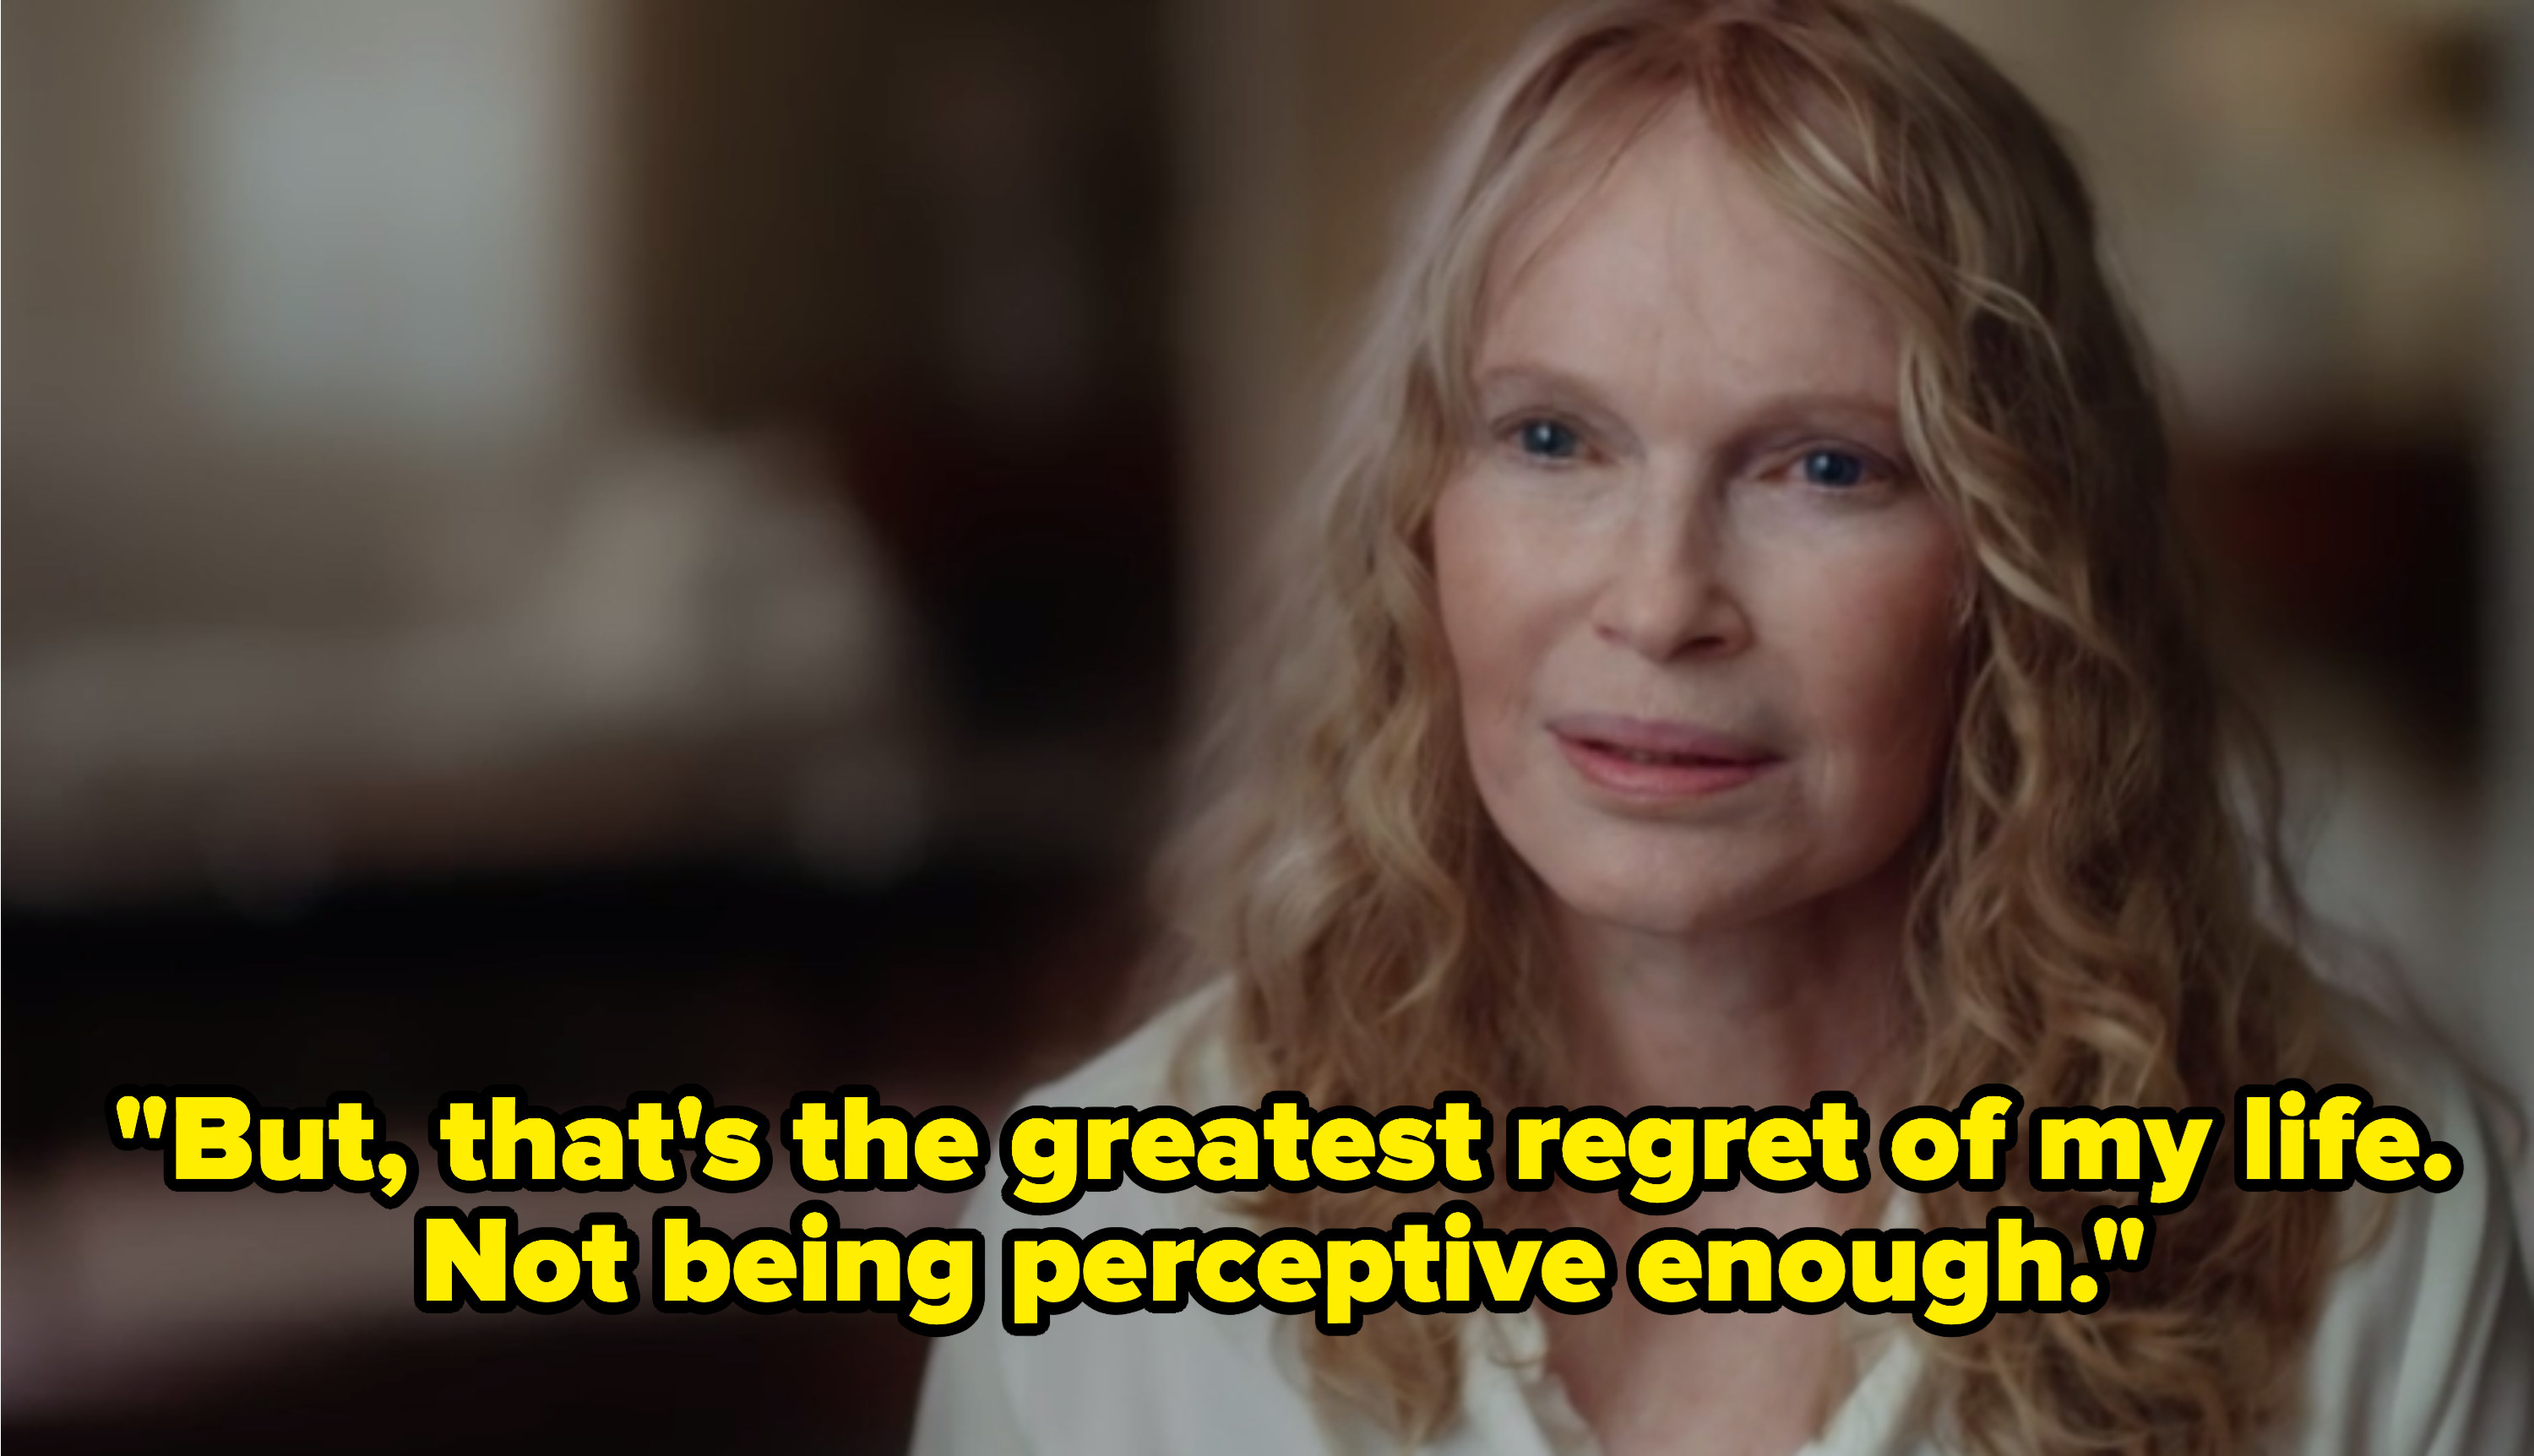 Mia Farrow taking about Woody Allen's inappropriate relationship with Dylan